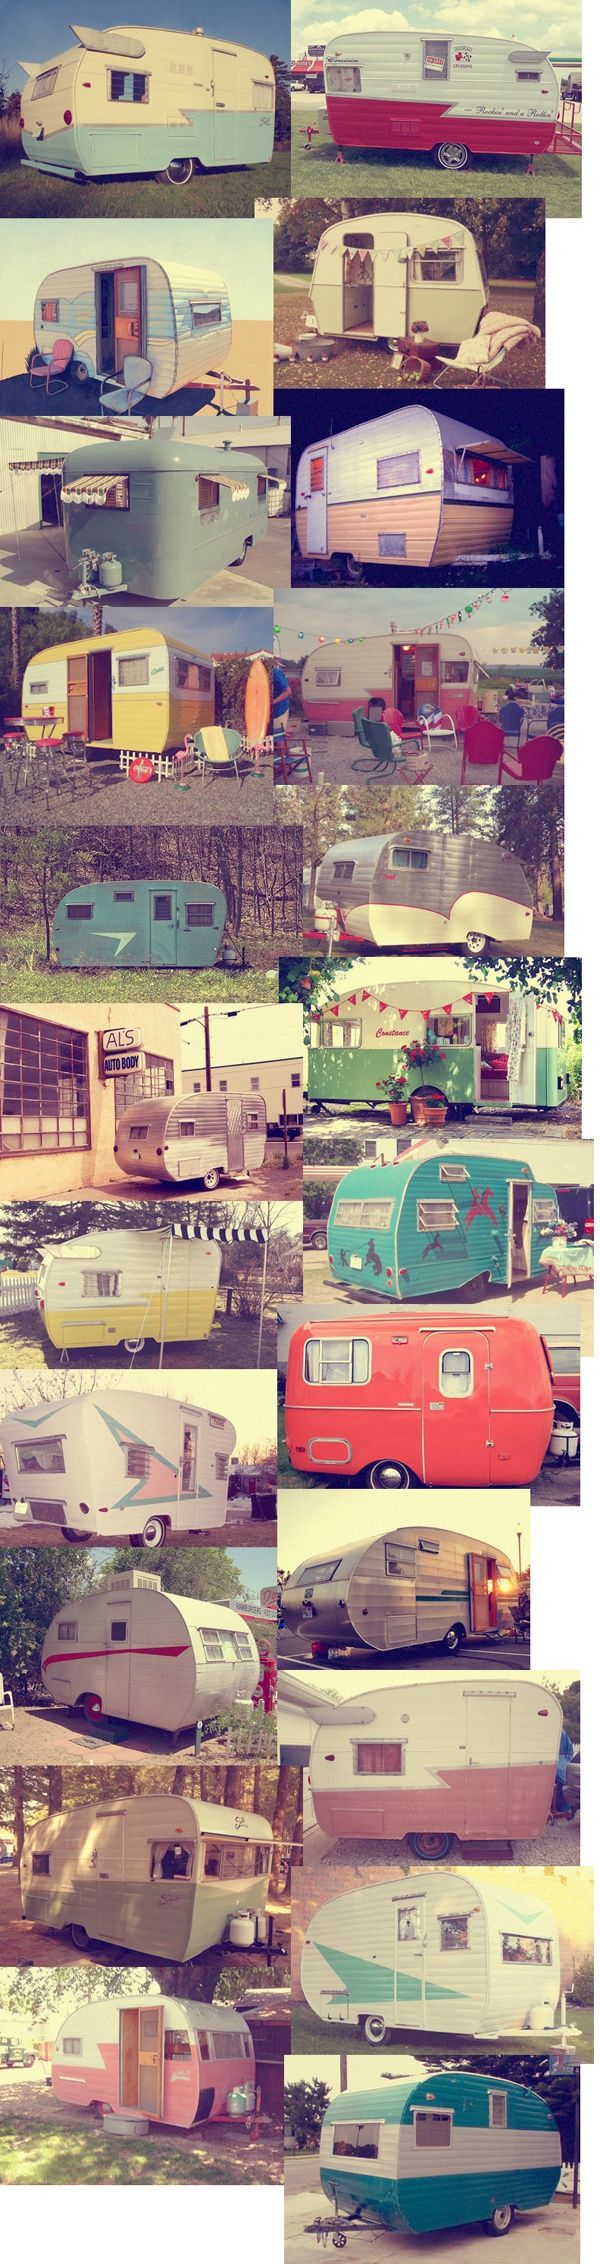 black beats studio Vintage Campers  Sometimes I wished I lived in an Airstream  Pin